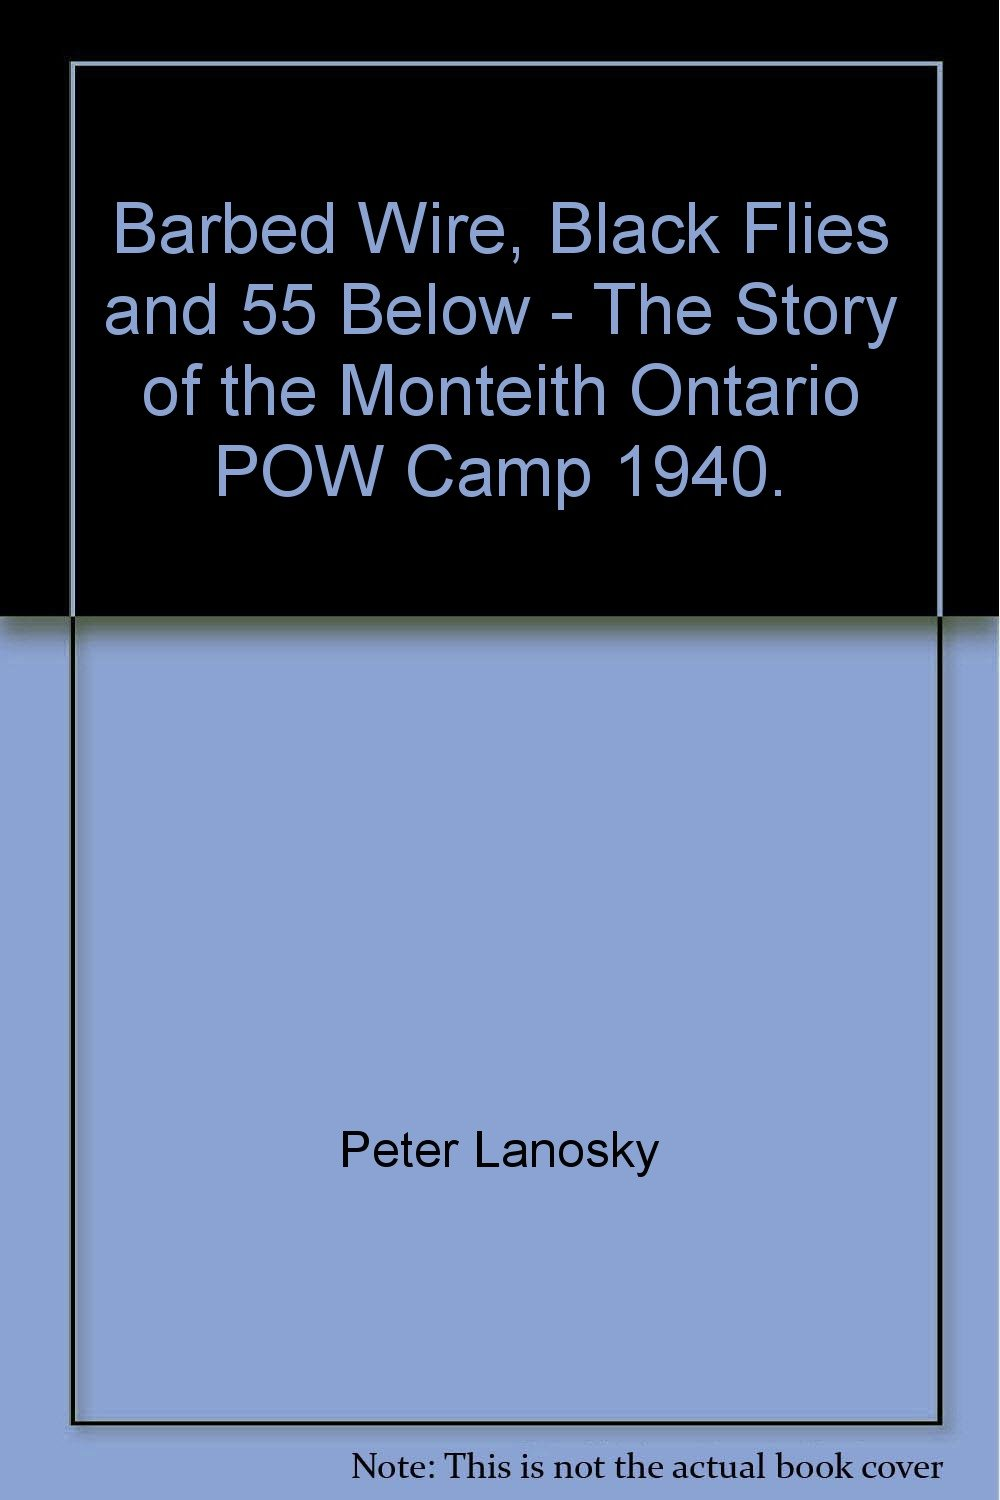 Barbed Wire, Black Flies and 55 Below - The Story of the